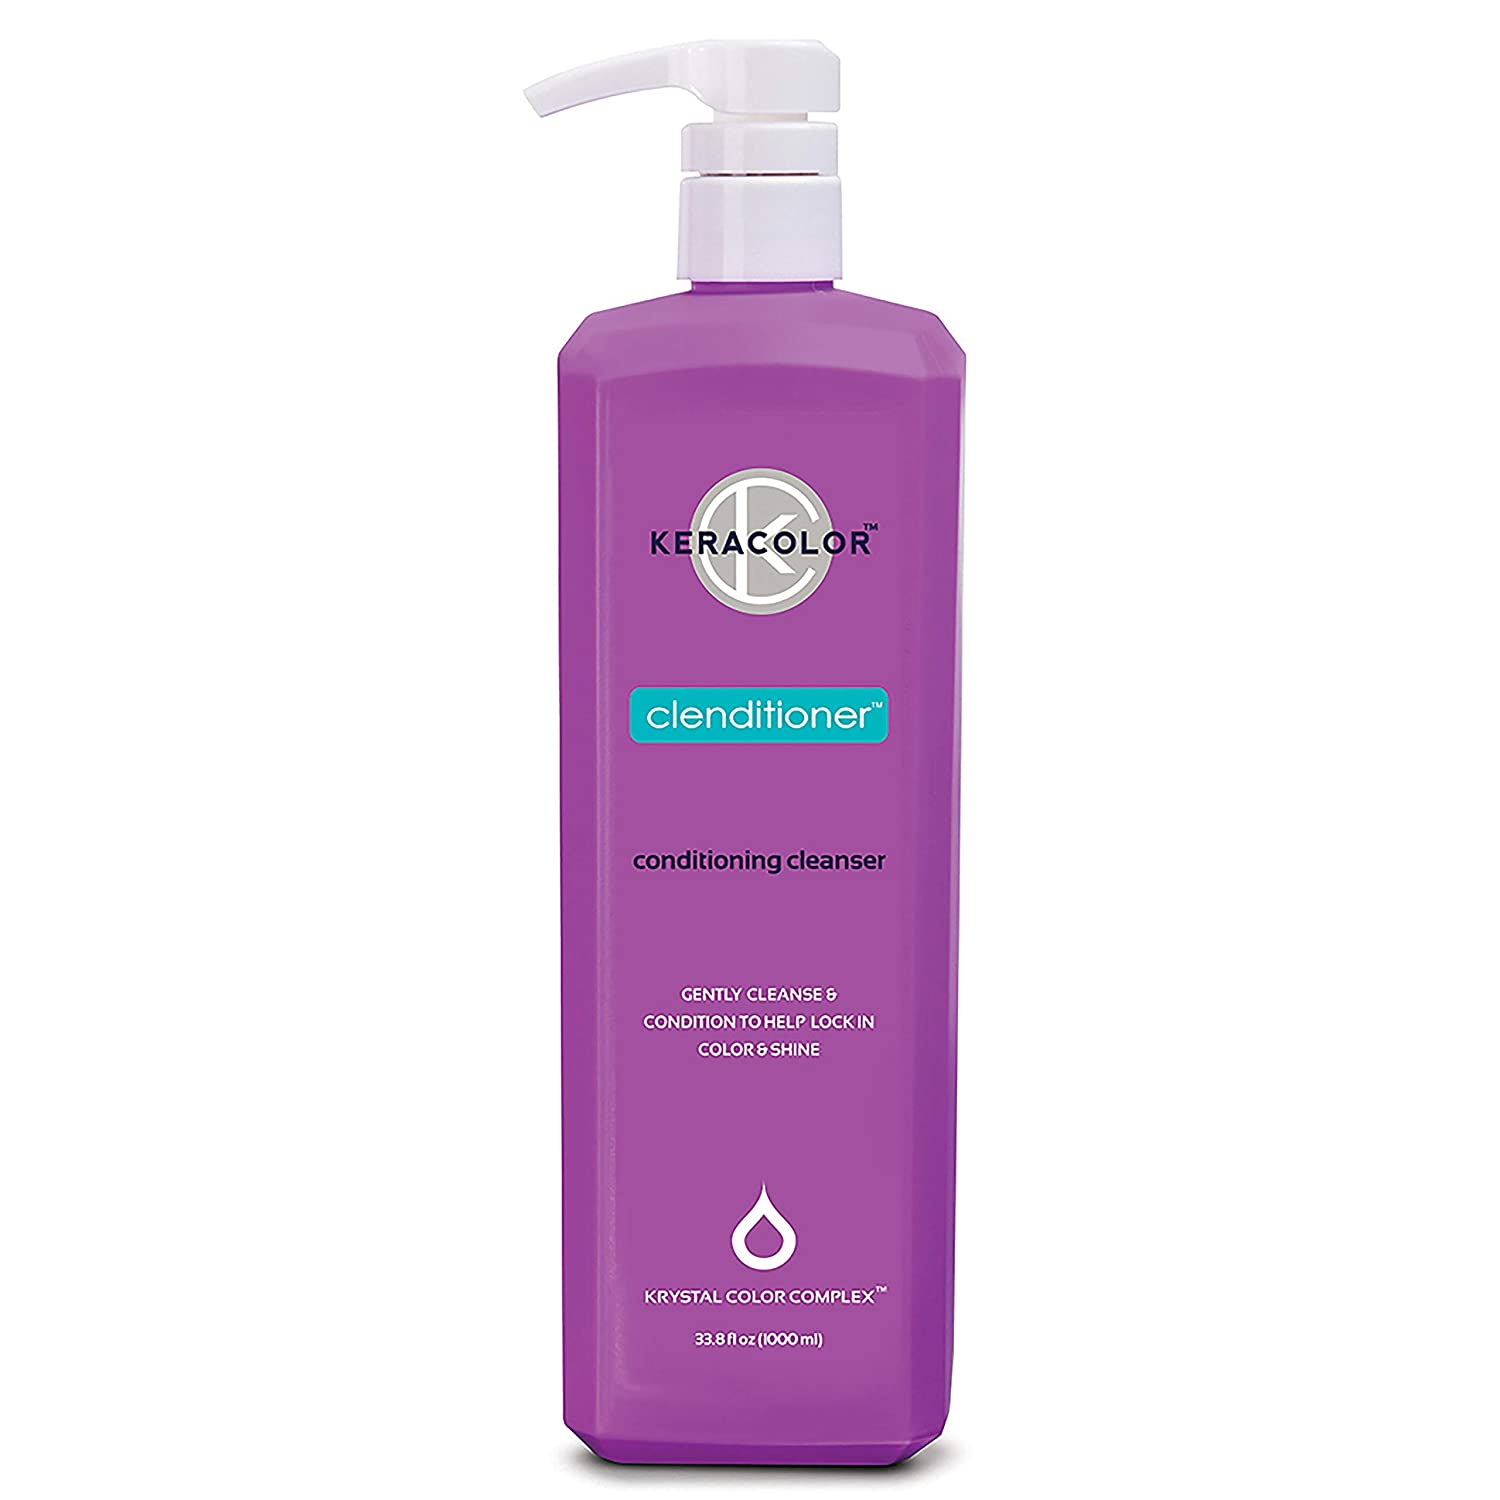 Keracolor Clenditioner Hair Cleanser: Co Wash Cleansing Conditioner Keratin Infused - Color Safe Prevents Color Fade - Replaces Your Shampoo | 2 sizes